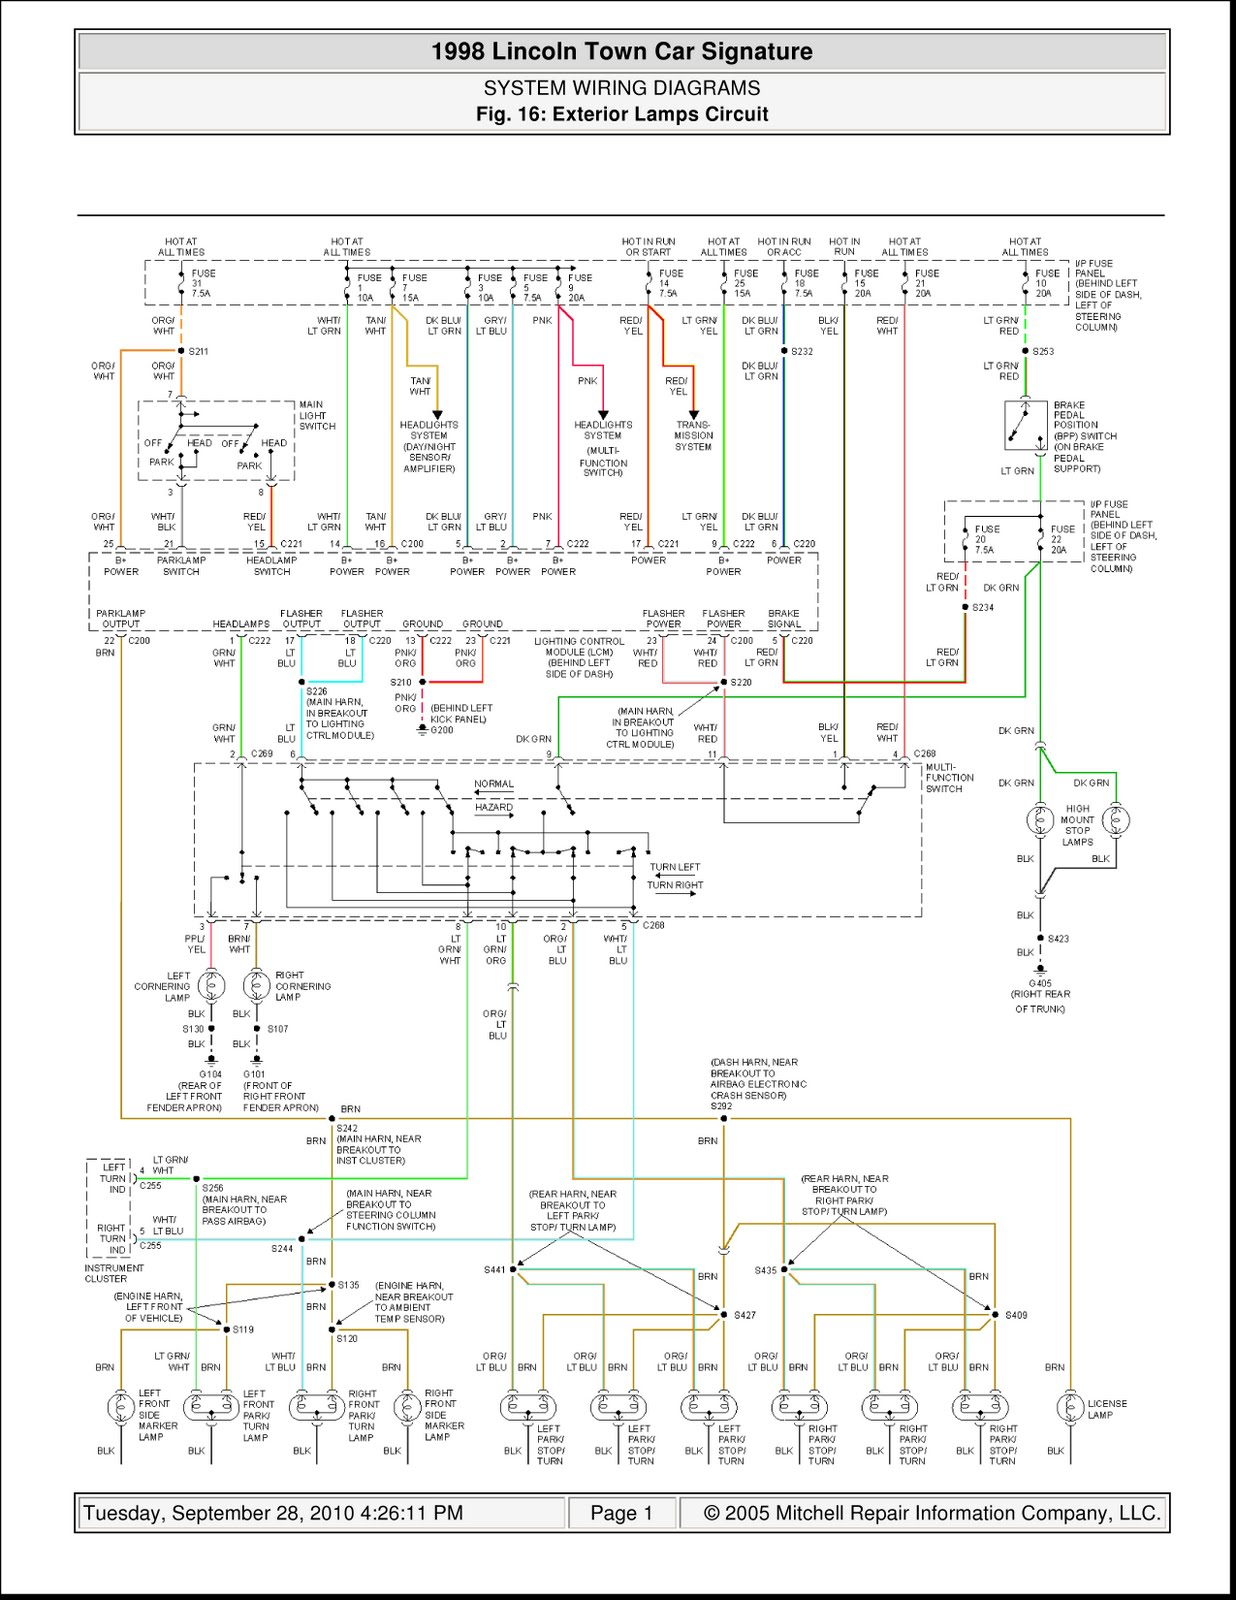 Wiring Diagram 1999 Lincoln Town Car - Wiring Diagram Server mile-match -  mile-match.ristoranteitredenari.it | 99 Lincoln Continental Wiring Diagram |  | Ristorante I Tre Denari Manerbio